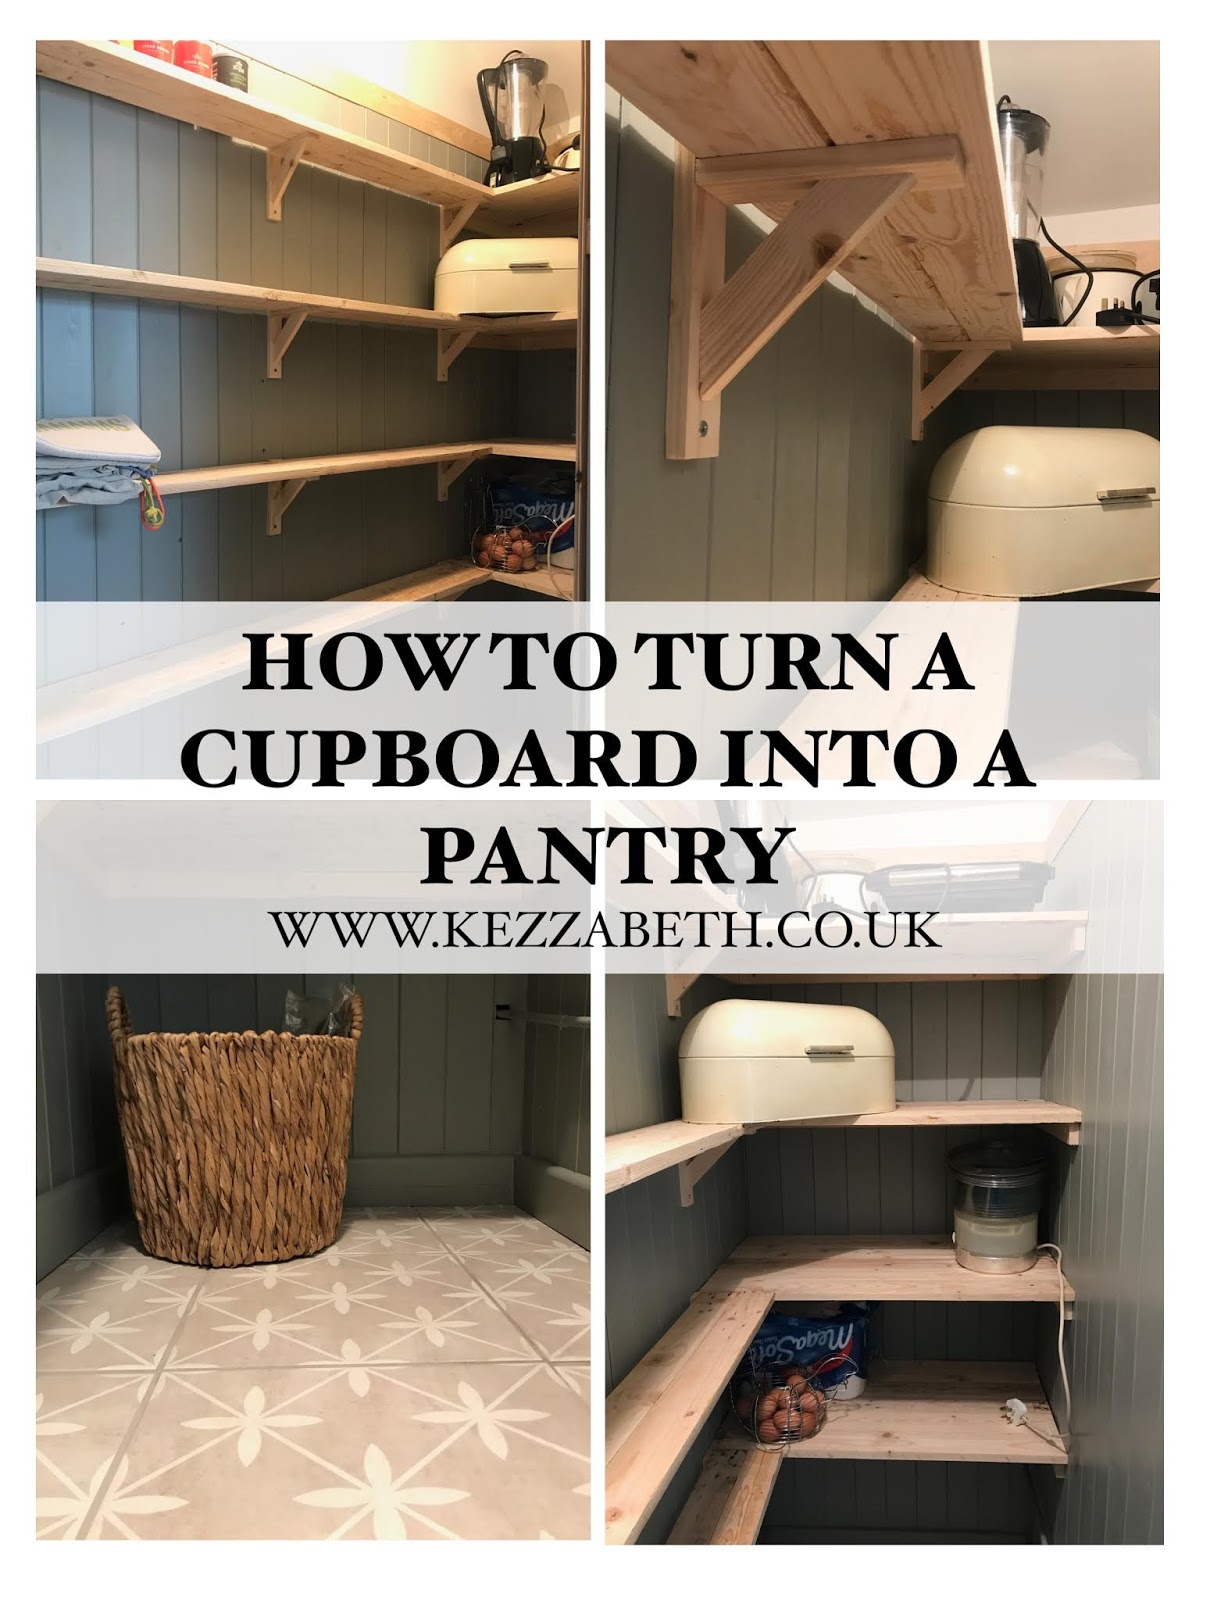 DIY How to Turn a Cupboard into a Pantry